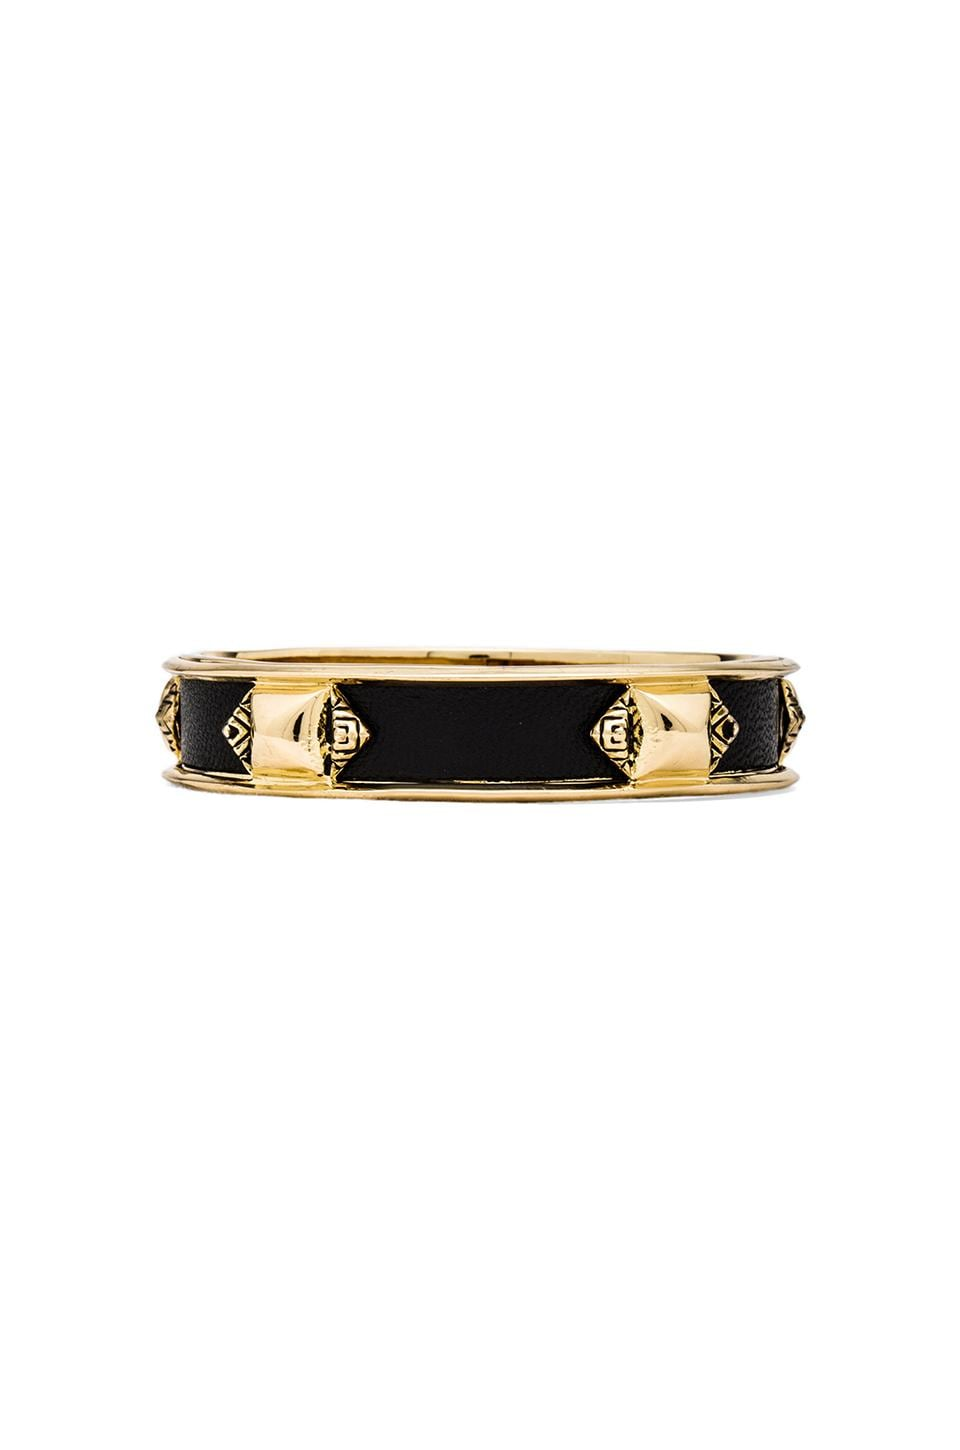 House of Harlow 1960 House of Harlow Pura Temple Bracelet in Gold/Black